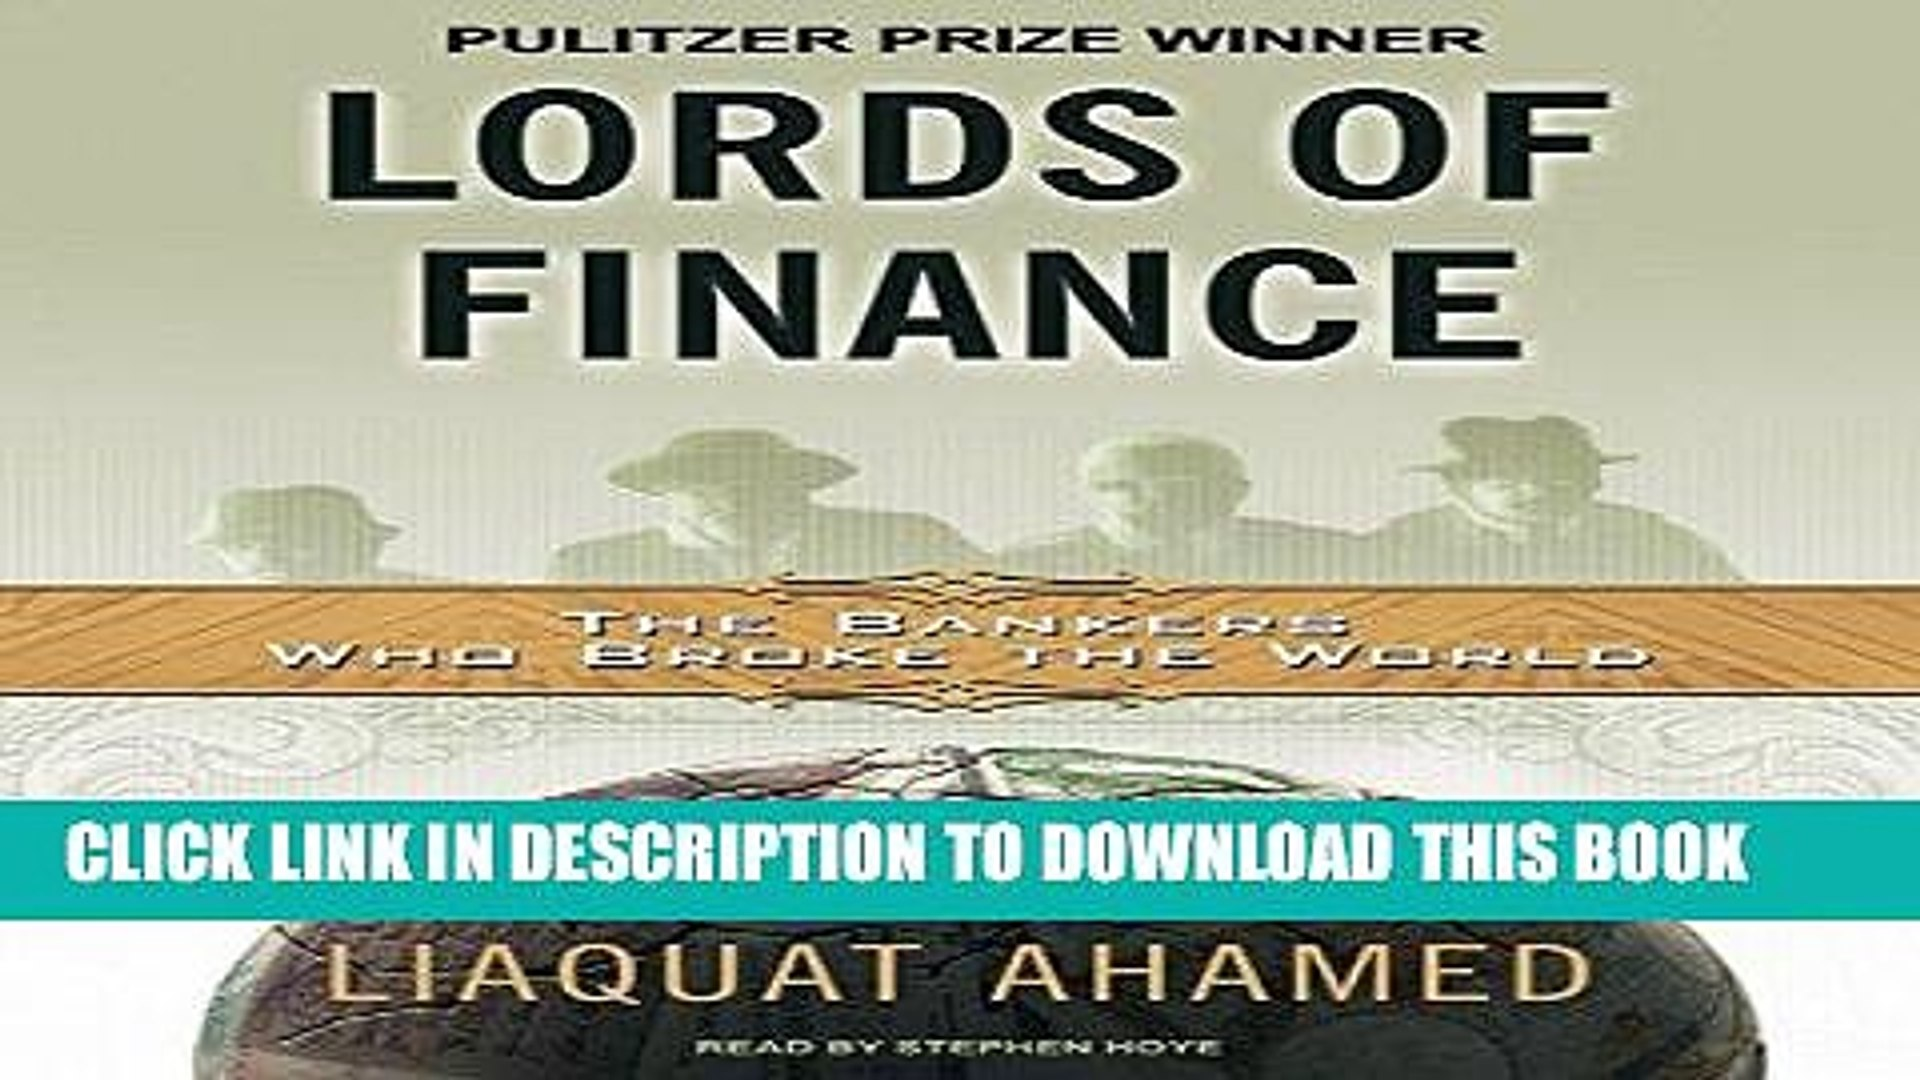 Best Seller Lords of Finance: The Bankers Who Broke the World [MP3 AUDIO] [UNABRIDGED] (MP3 CD)